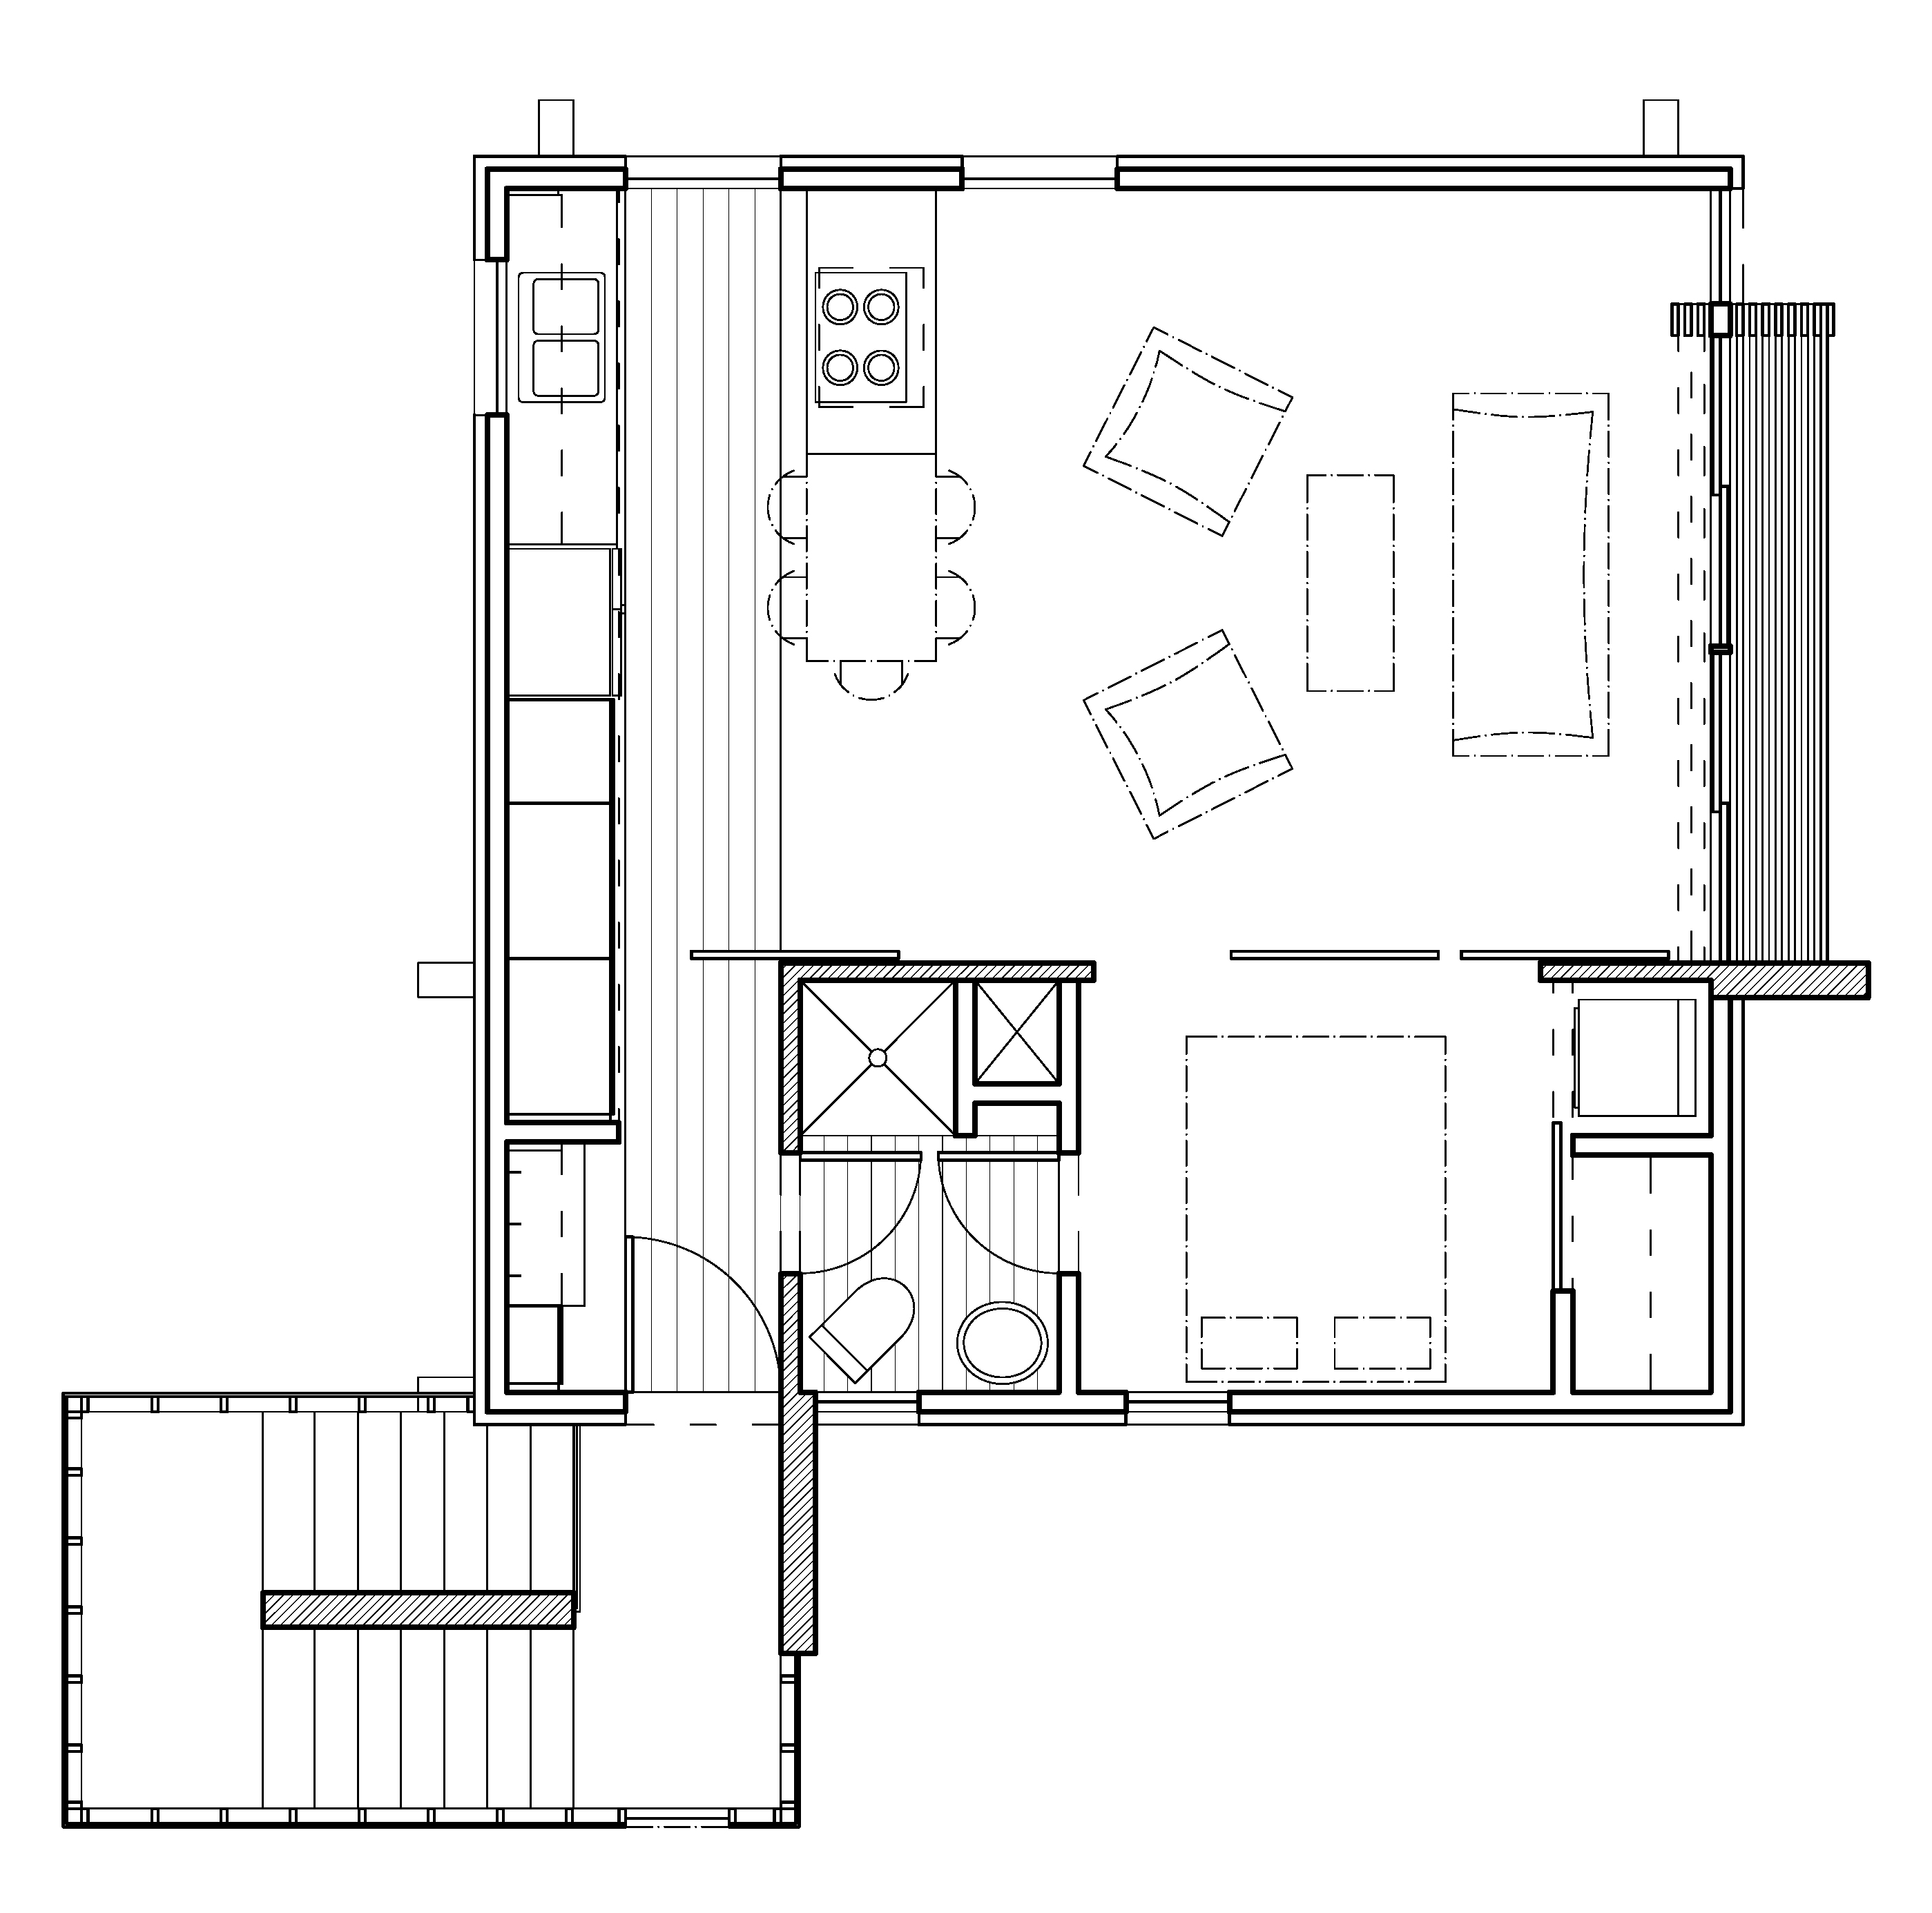 Modern house plans contemporary home designs floor plan 04 Contemporary house blueprints